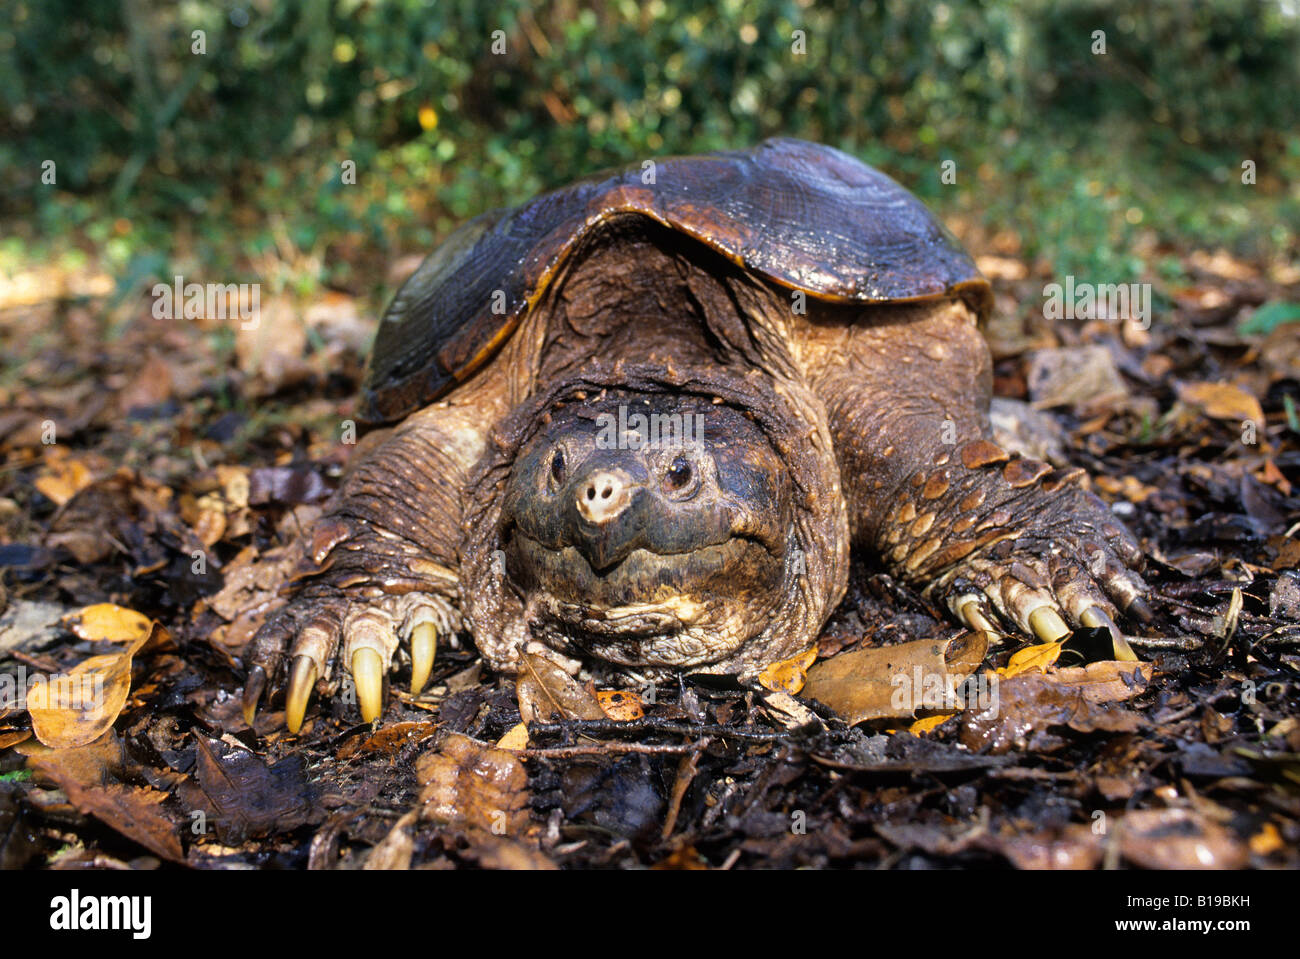 Adult snapping turtle (Chelydra serpentina osceola), central Florida, USA - Stock Image